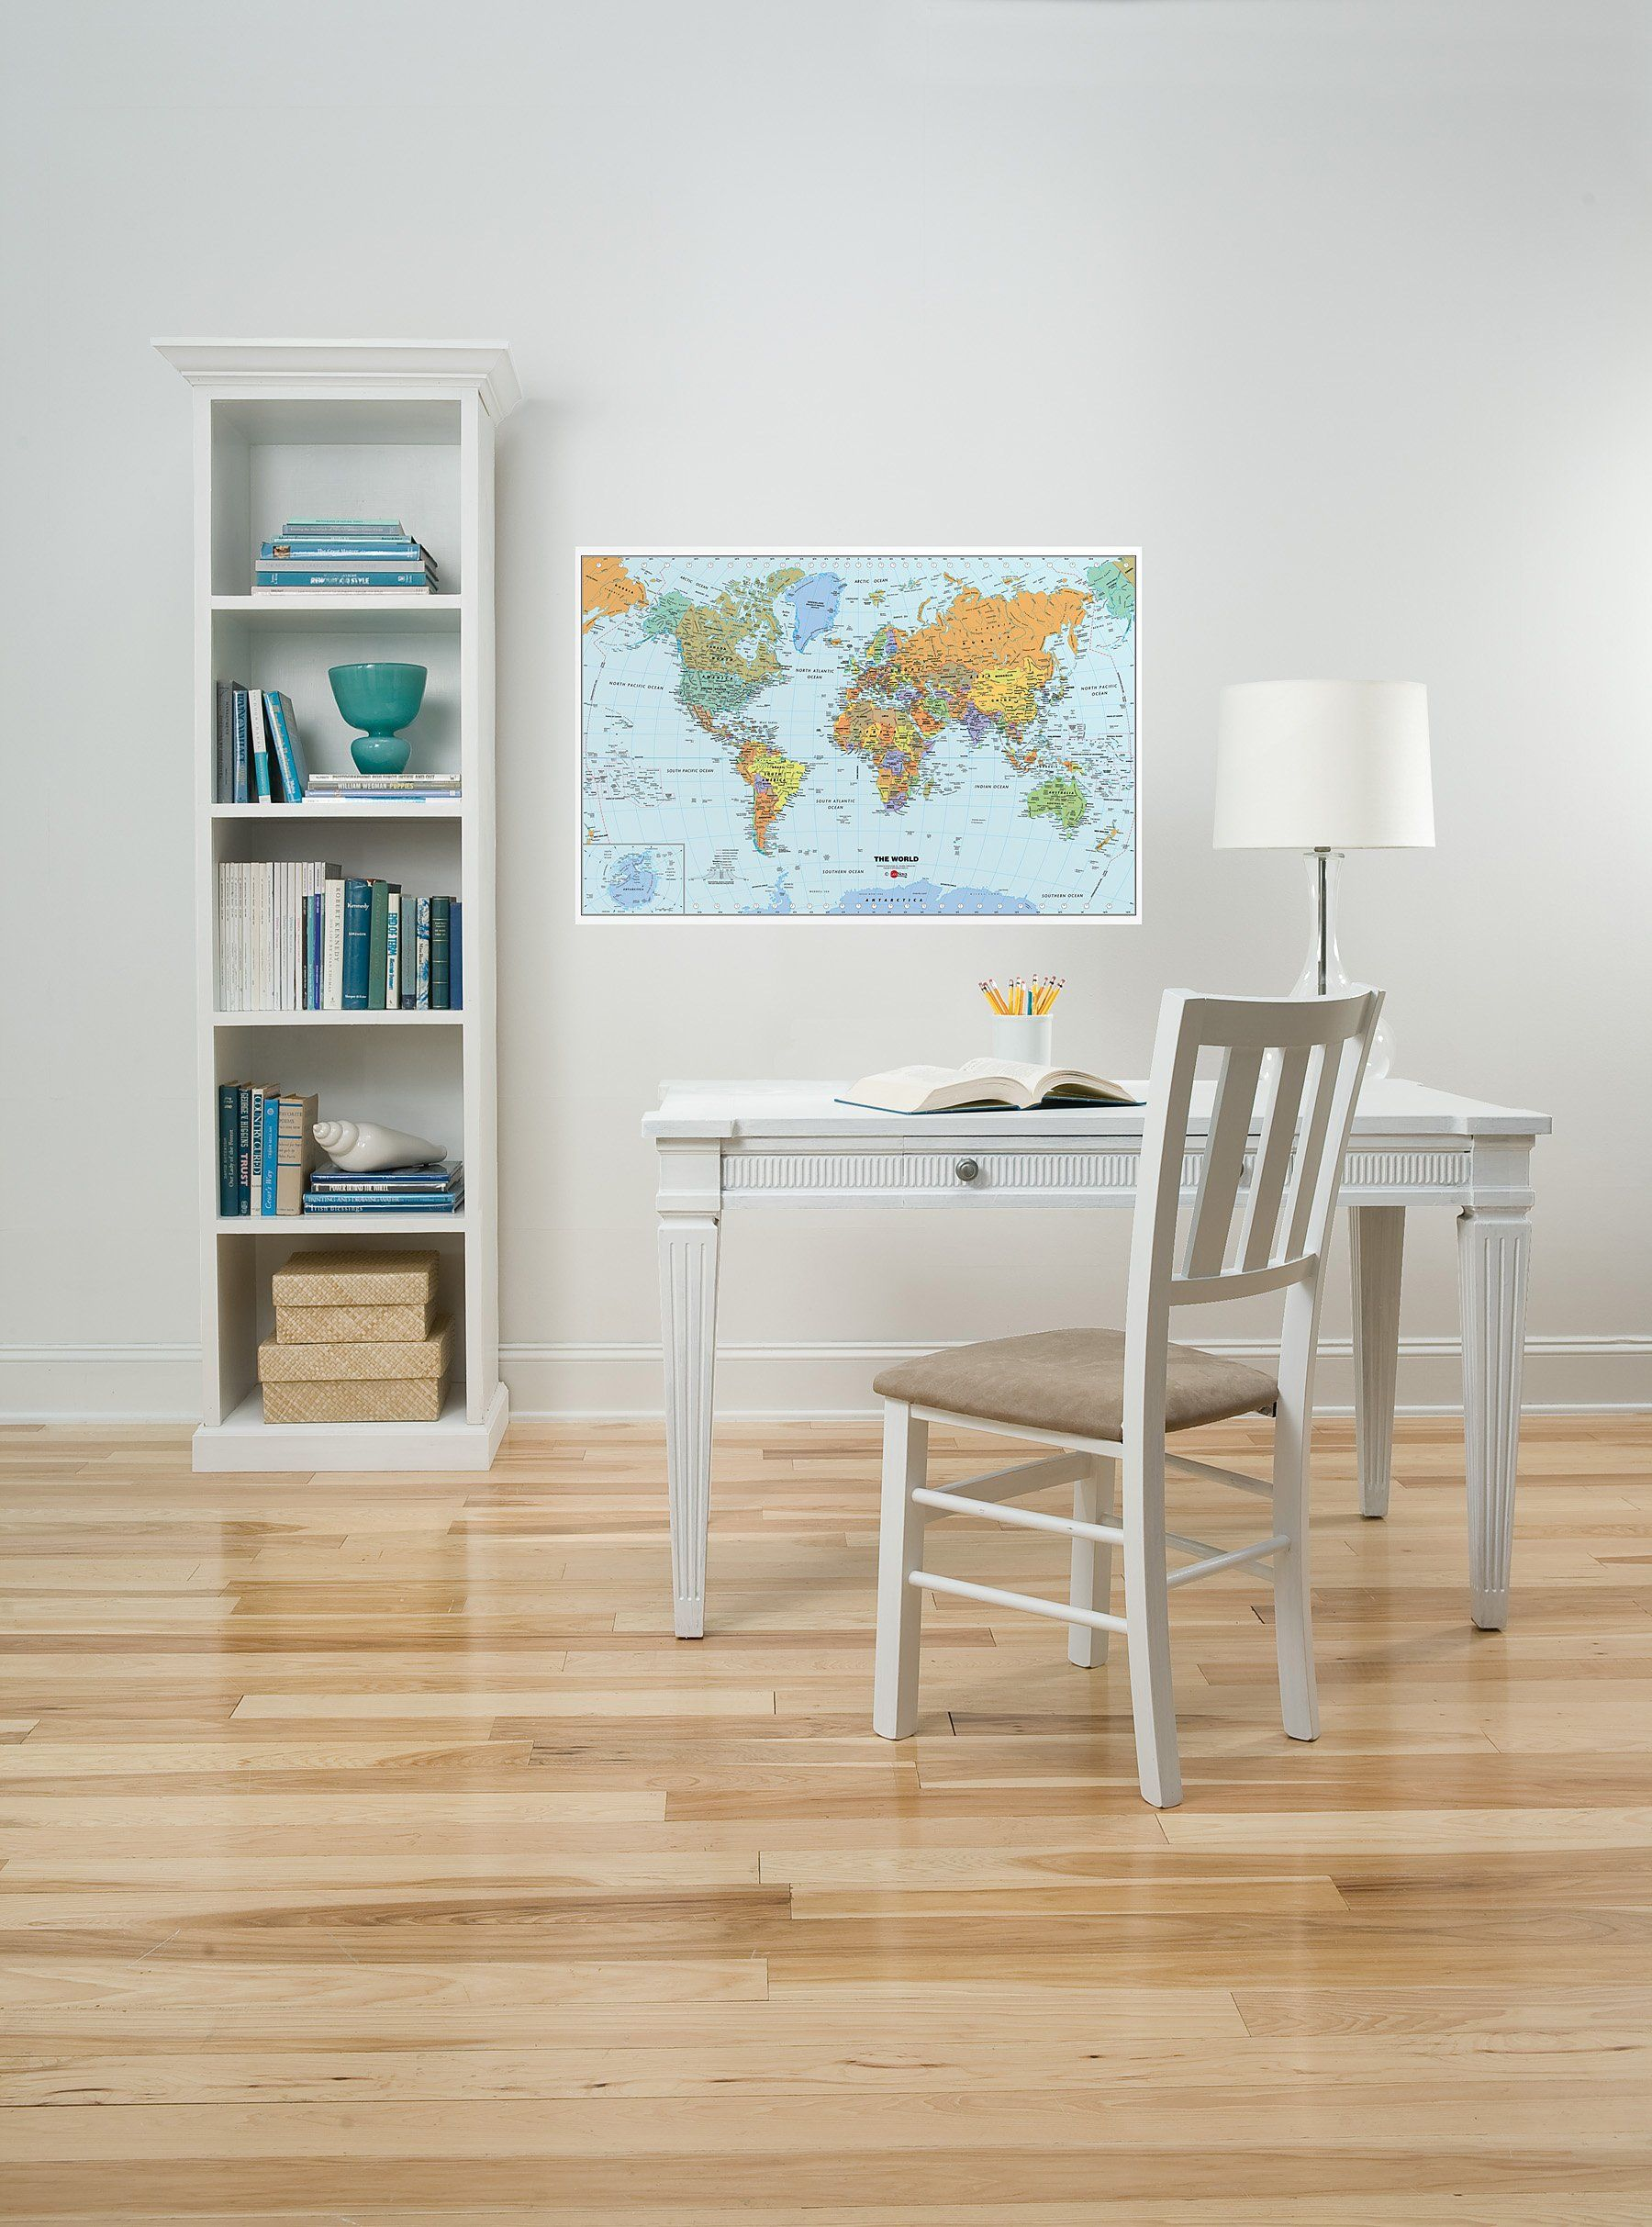 Peel stick world dry erase map with marker 1159 at amazon brewster wall pops peel stick world dry erase map with marker gumiabroncs Image collections